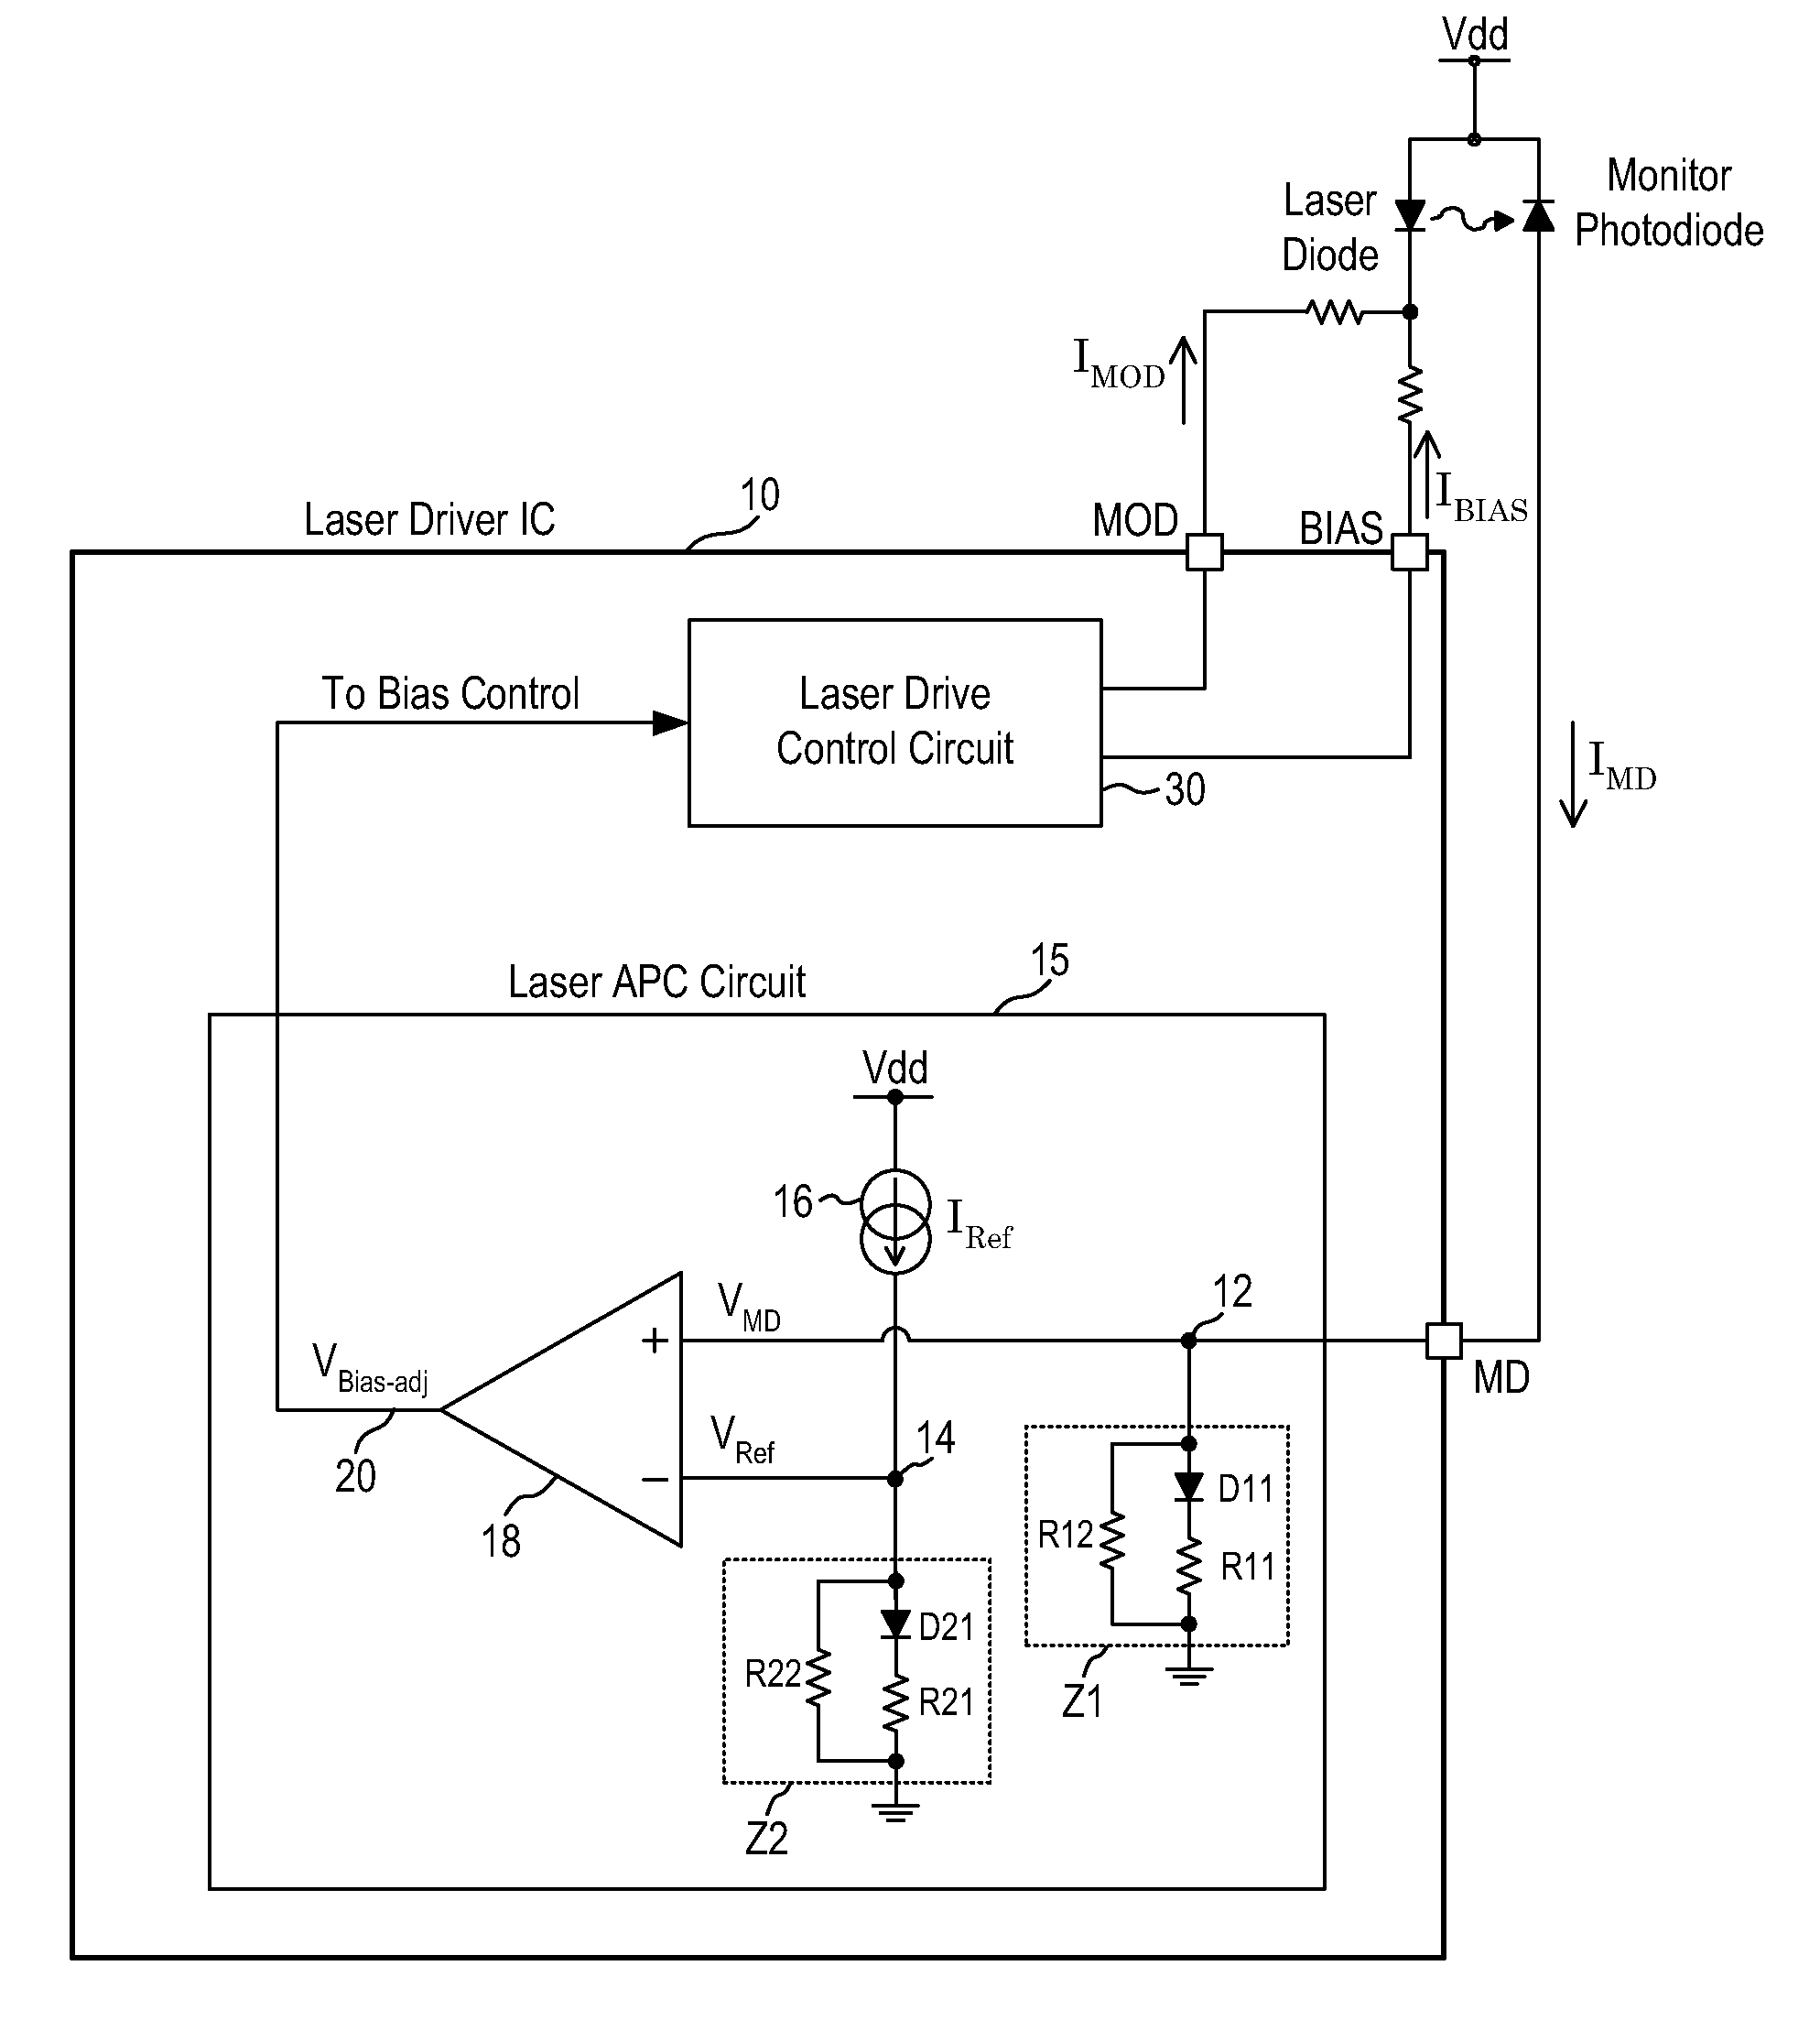 hight resolution of  gaas laser diode diagram laser driver automatic power control